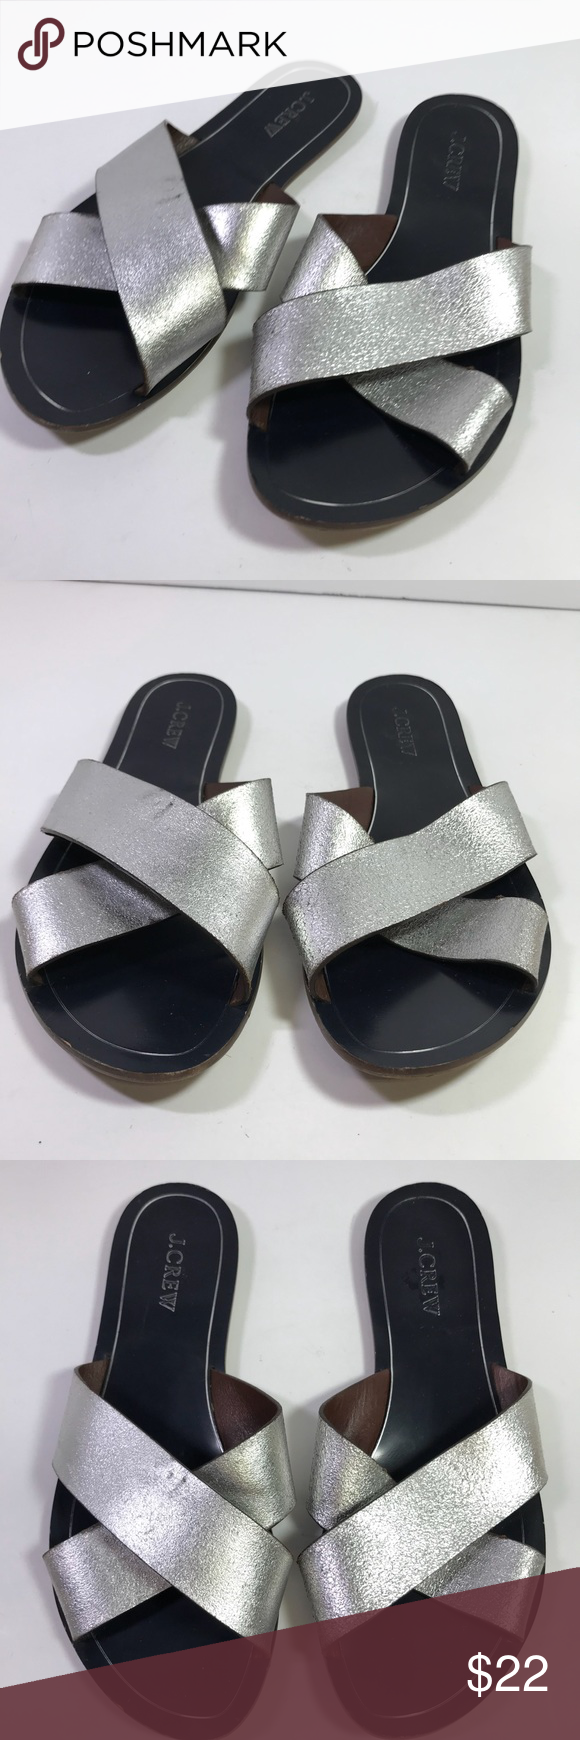 dbdce19f0 J.Crew Cyprus Metallic Silver Leather Sandals sz 9 J.Crew Cyprus Metallic  Silver Slide Sandals C1325 Made in Brazil Leather Size 9 J. Crew Shoes  Sandals